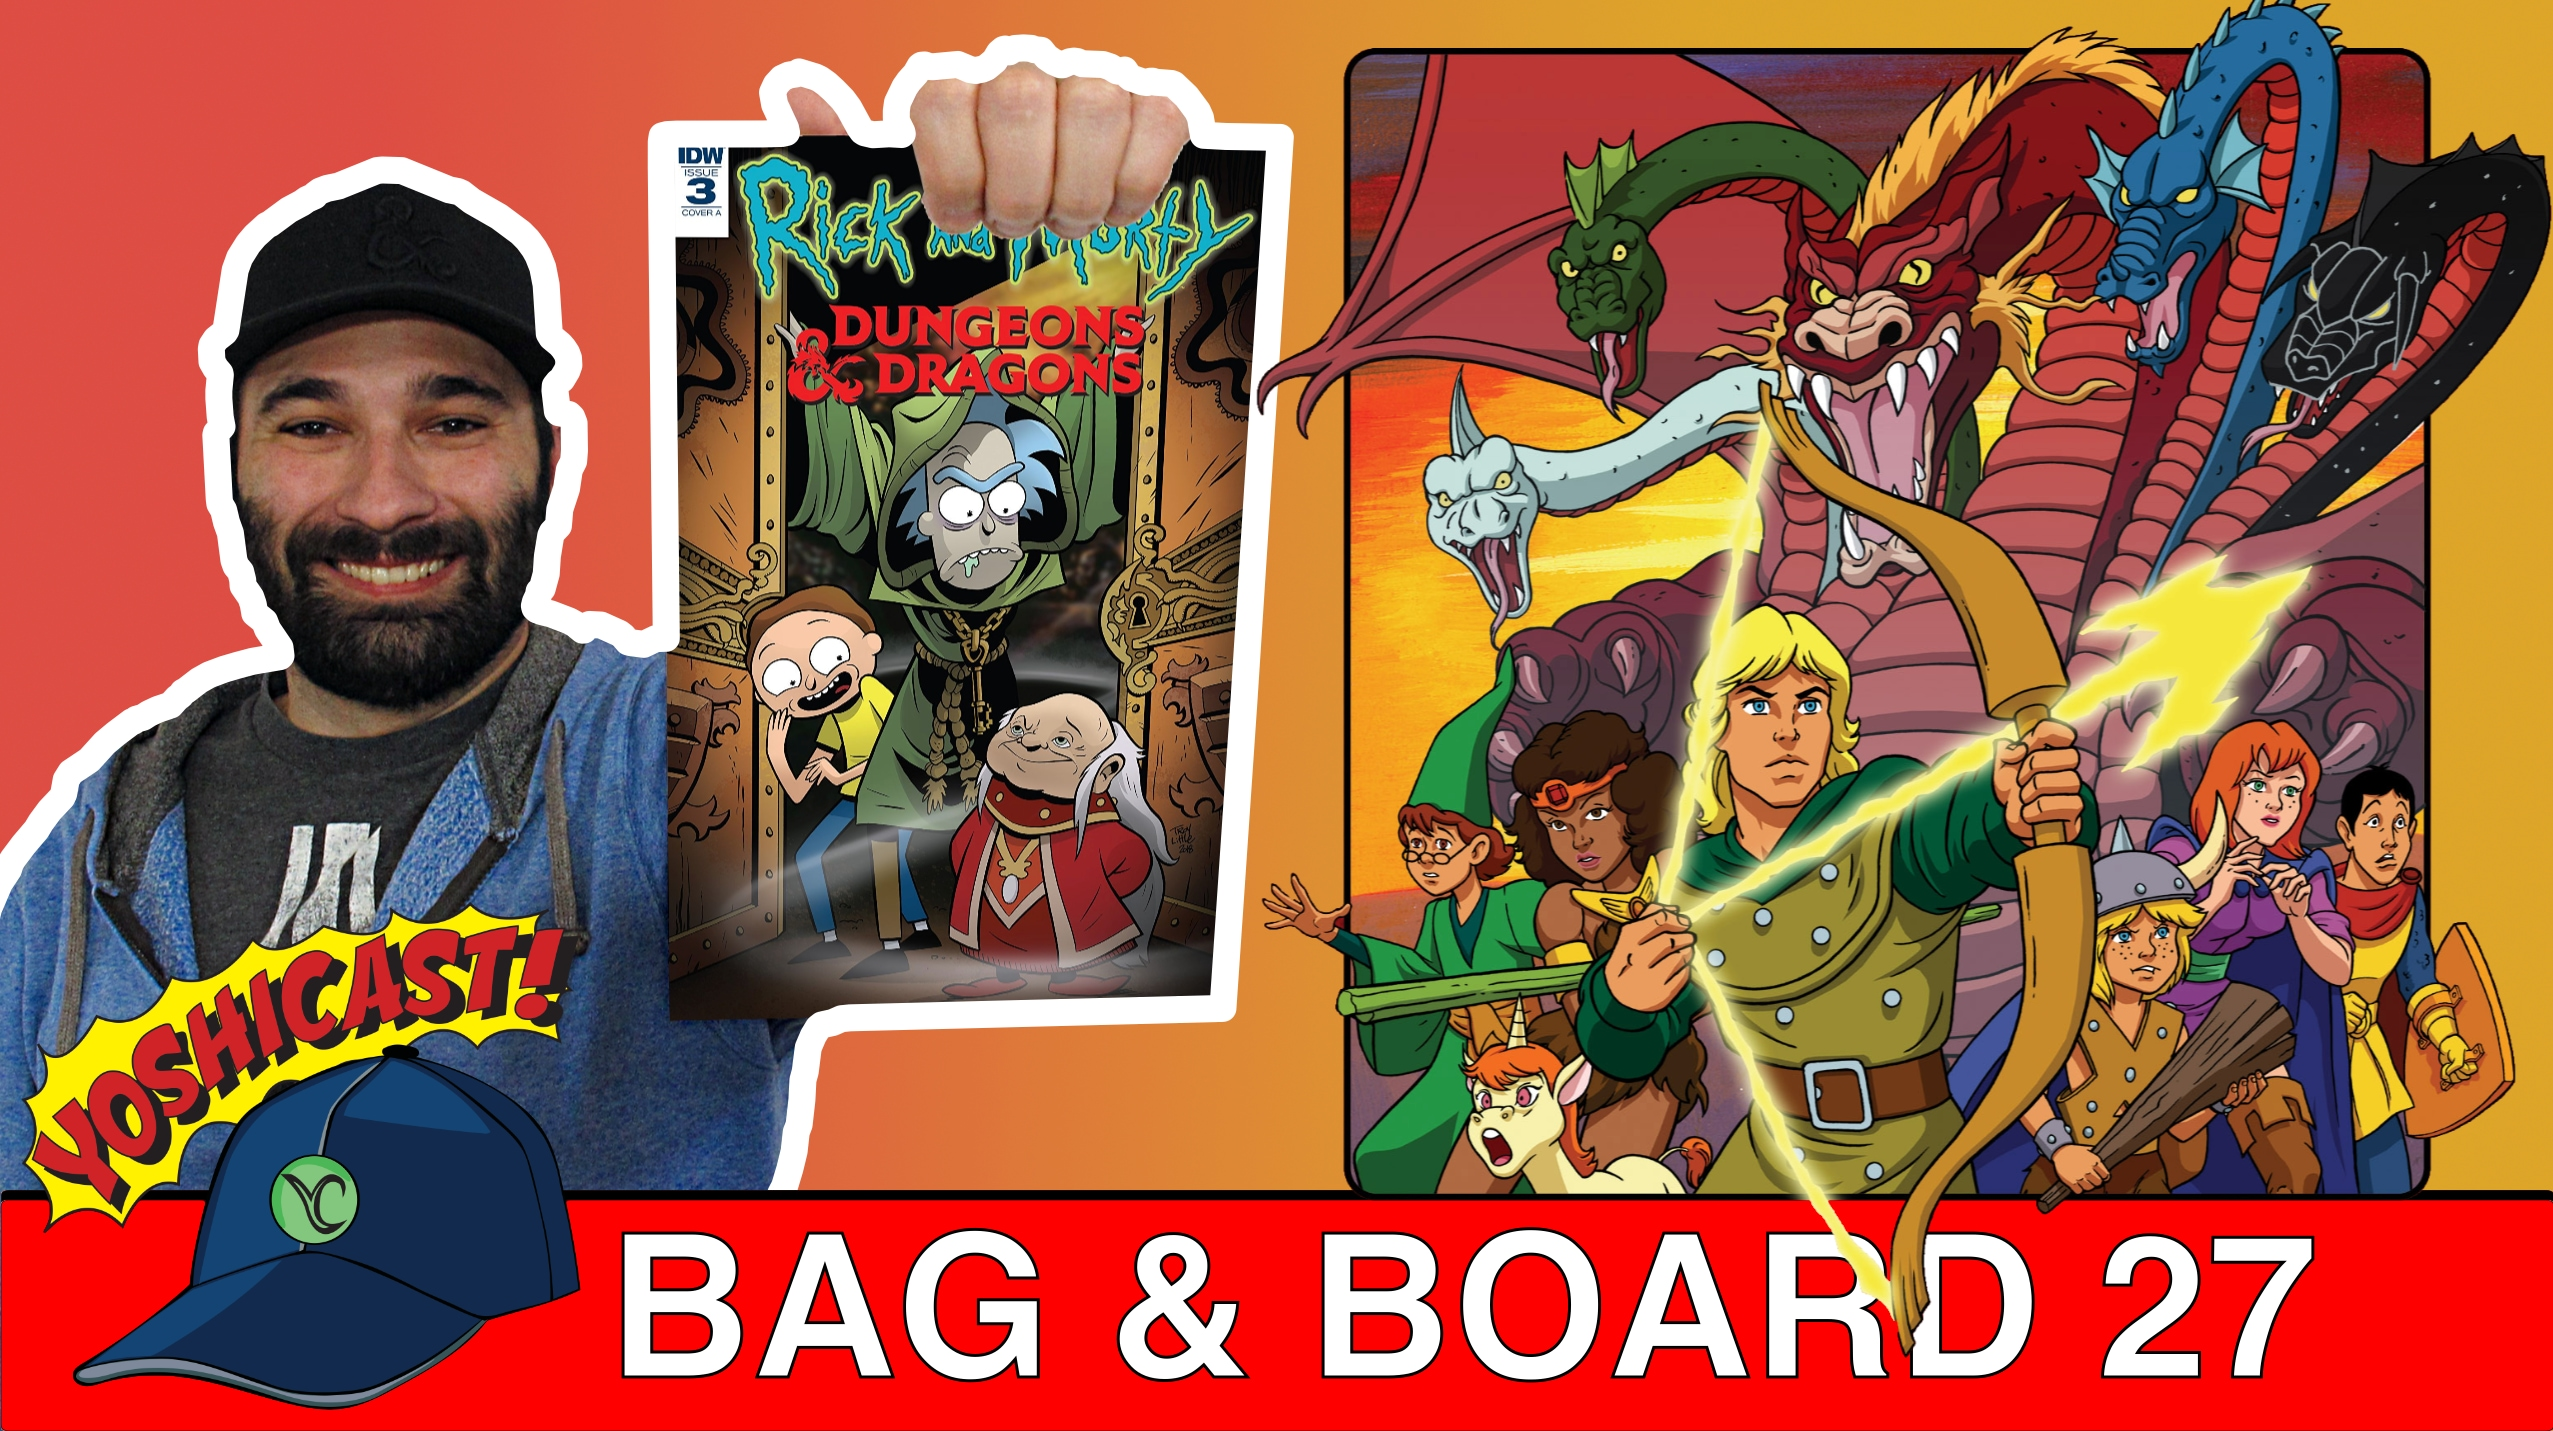 Bag & Board 27 | Rick And Morty Vs Dungeons & Dragons, Shazam, Martian Manhunter, Cosmic Ghost Rider